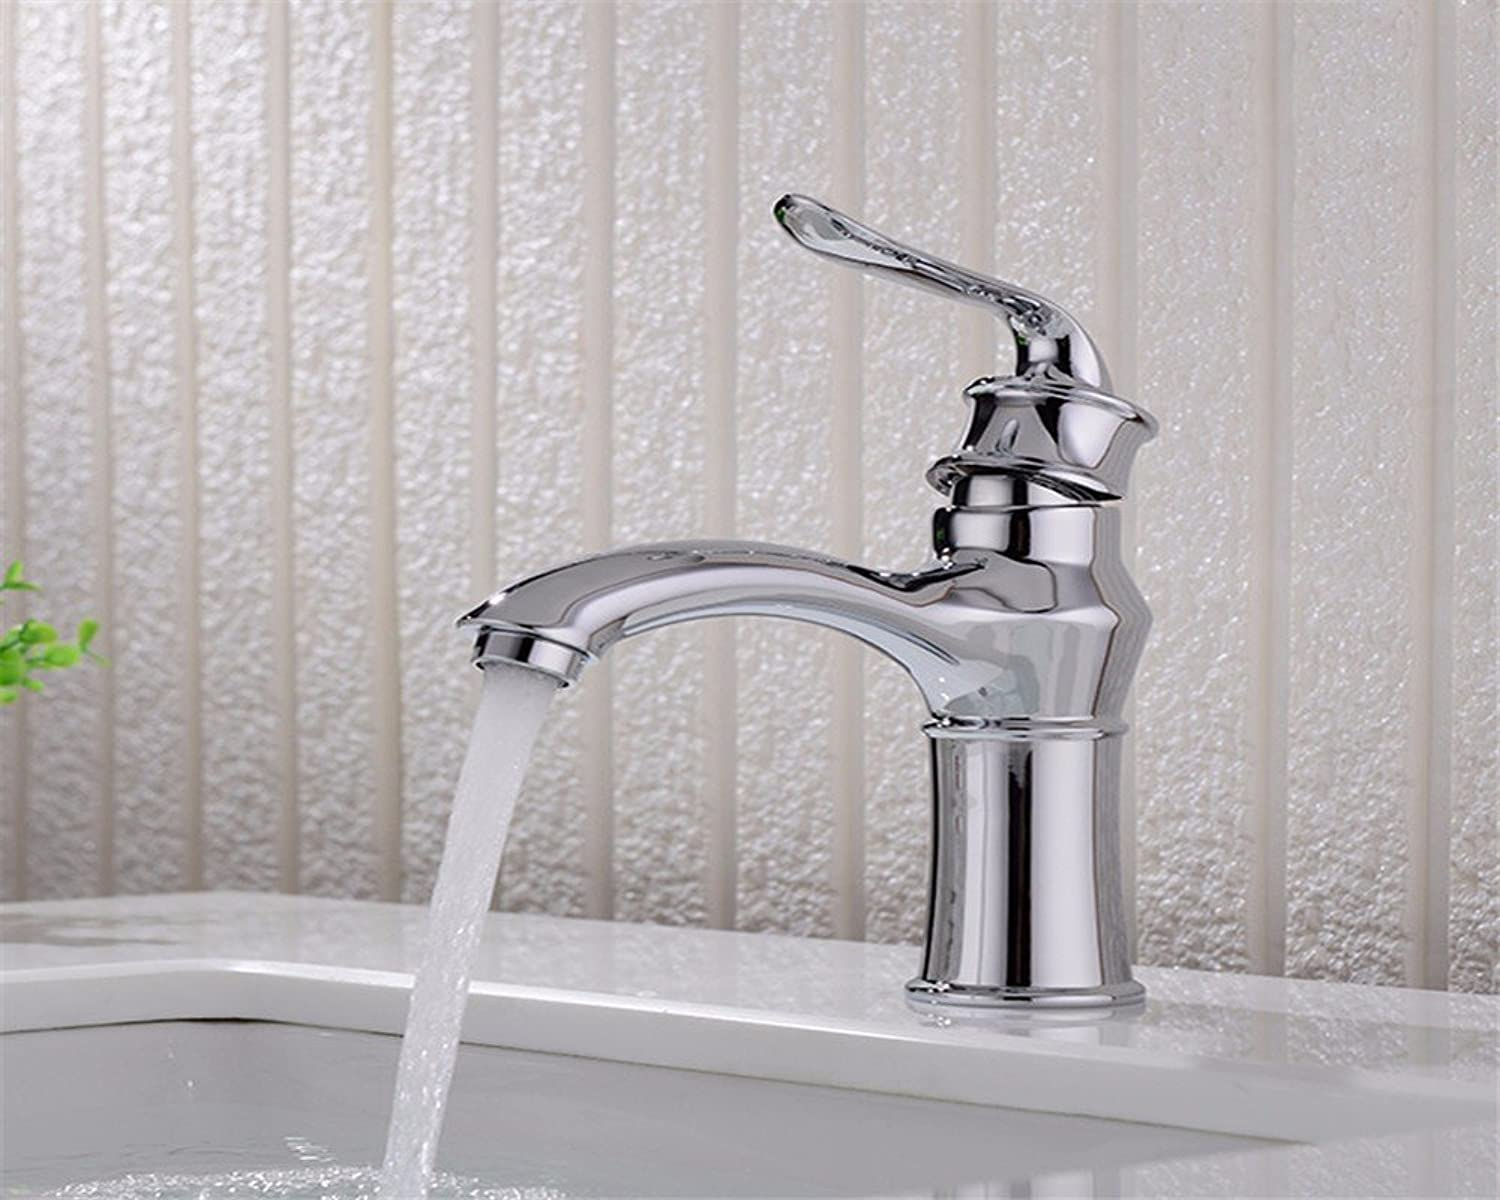 Hlluya Professional Sink Mixer Tap Kitchen Faucet The bathrooms are single hole and cold water, chrome-colord vanity sinks faucets, 1